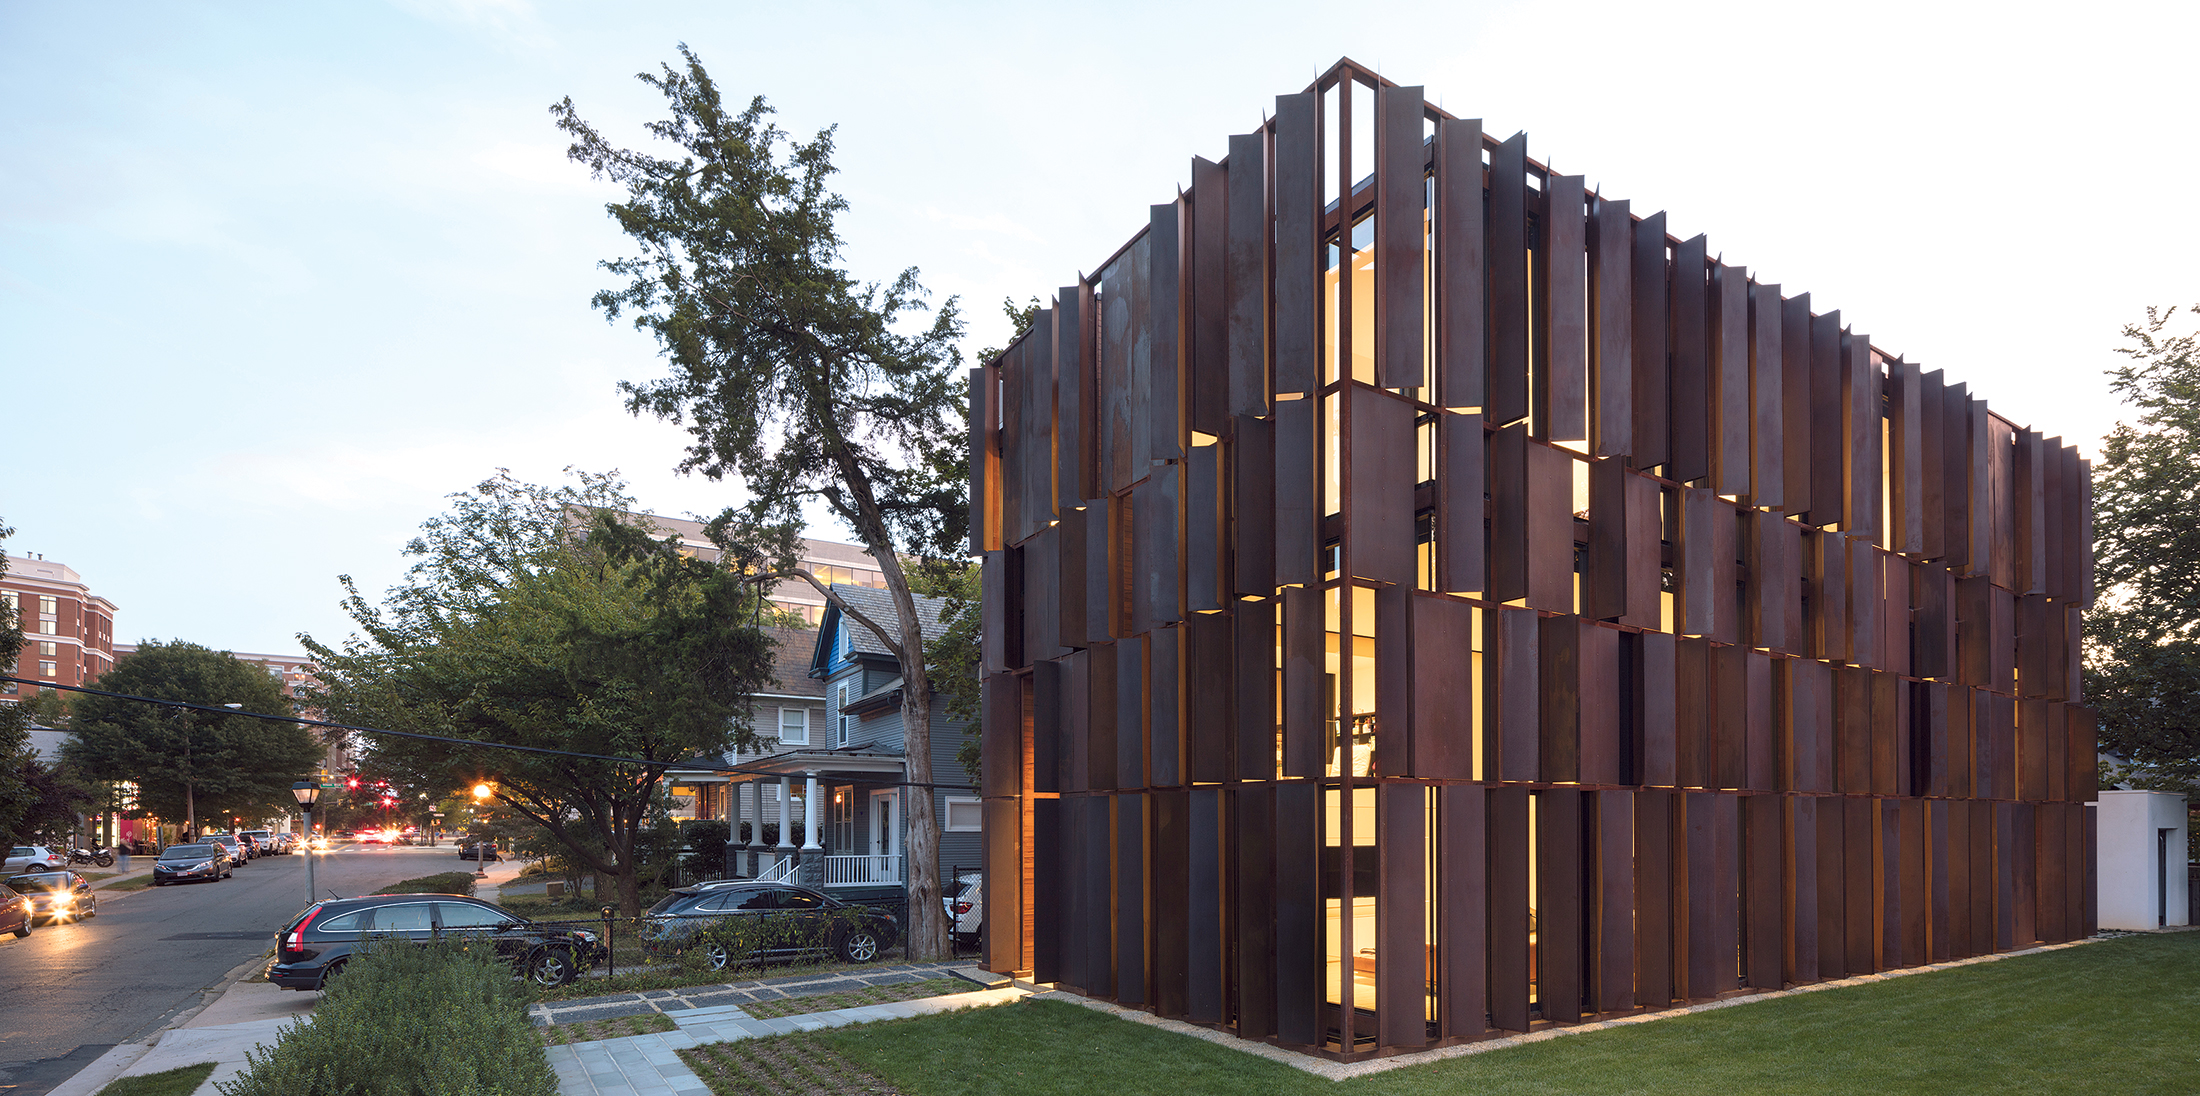 Photographs of Metal Winner house by Paul Warchol.